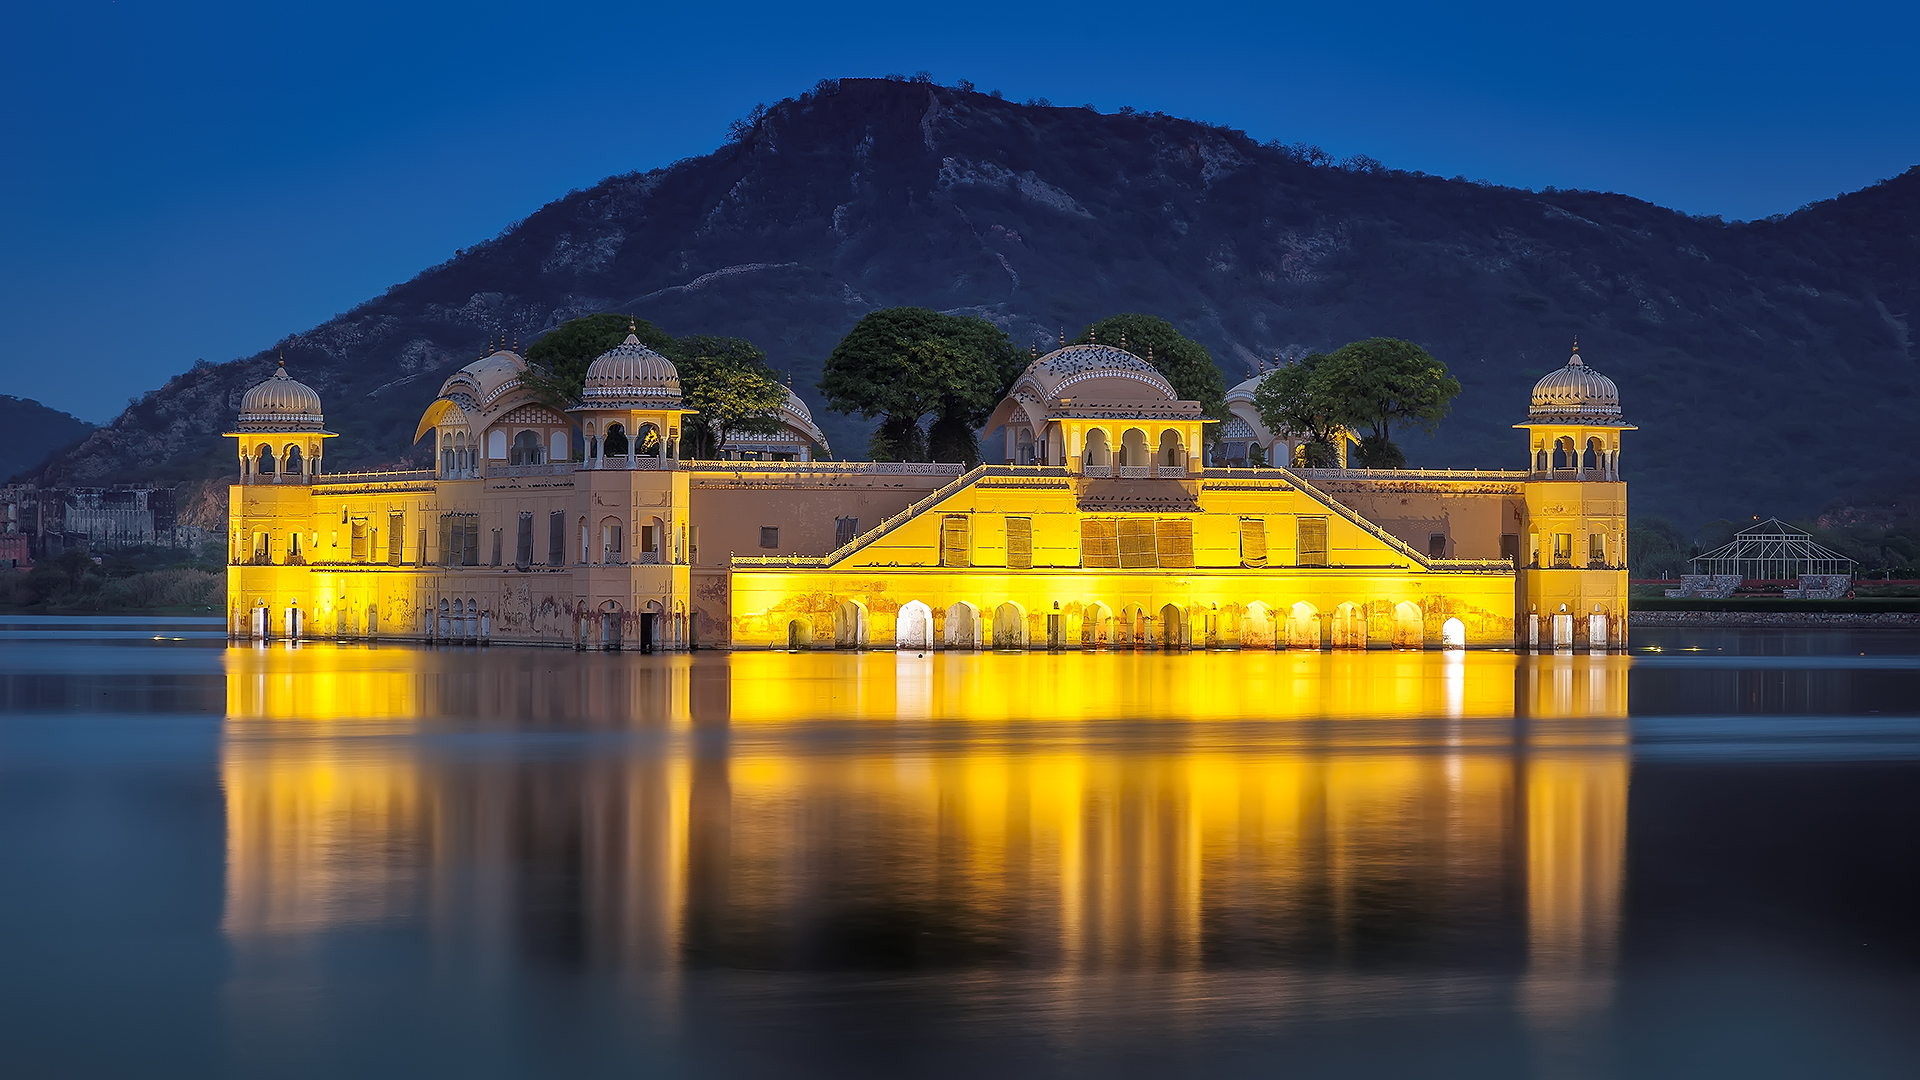 jal mahal jaipur, trip to ideal cities of noth india